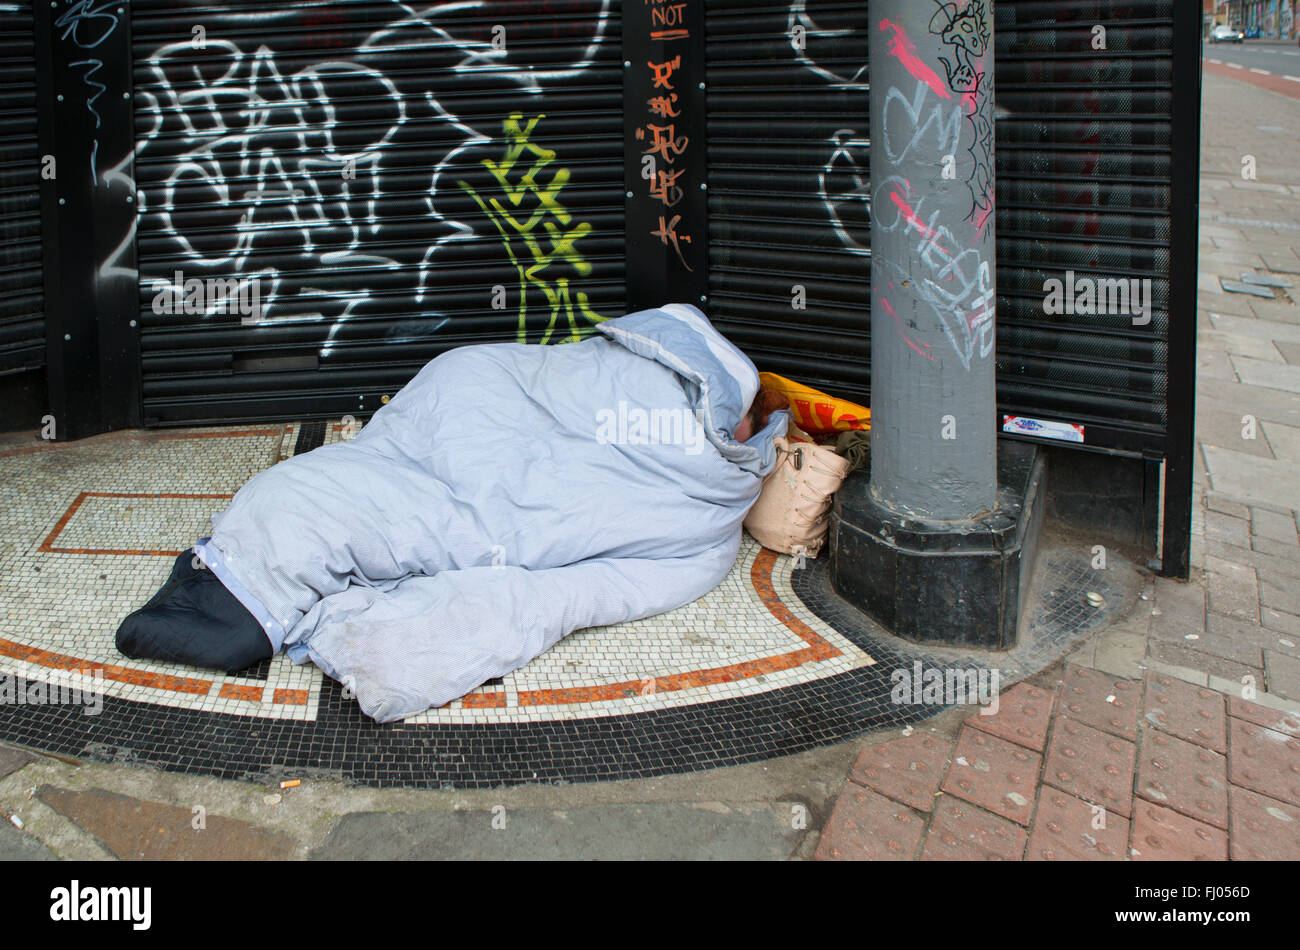 Homeless Person Sleeps Rough in Shop Door Way with Graffiti in Stokes Croft Bristol - Stock Image